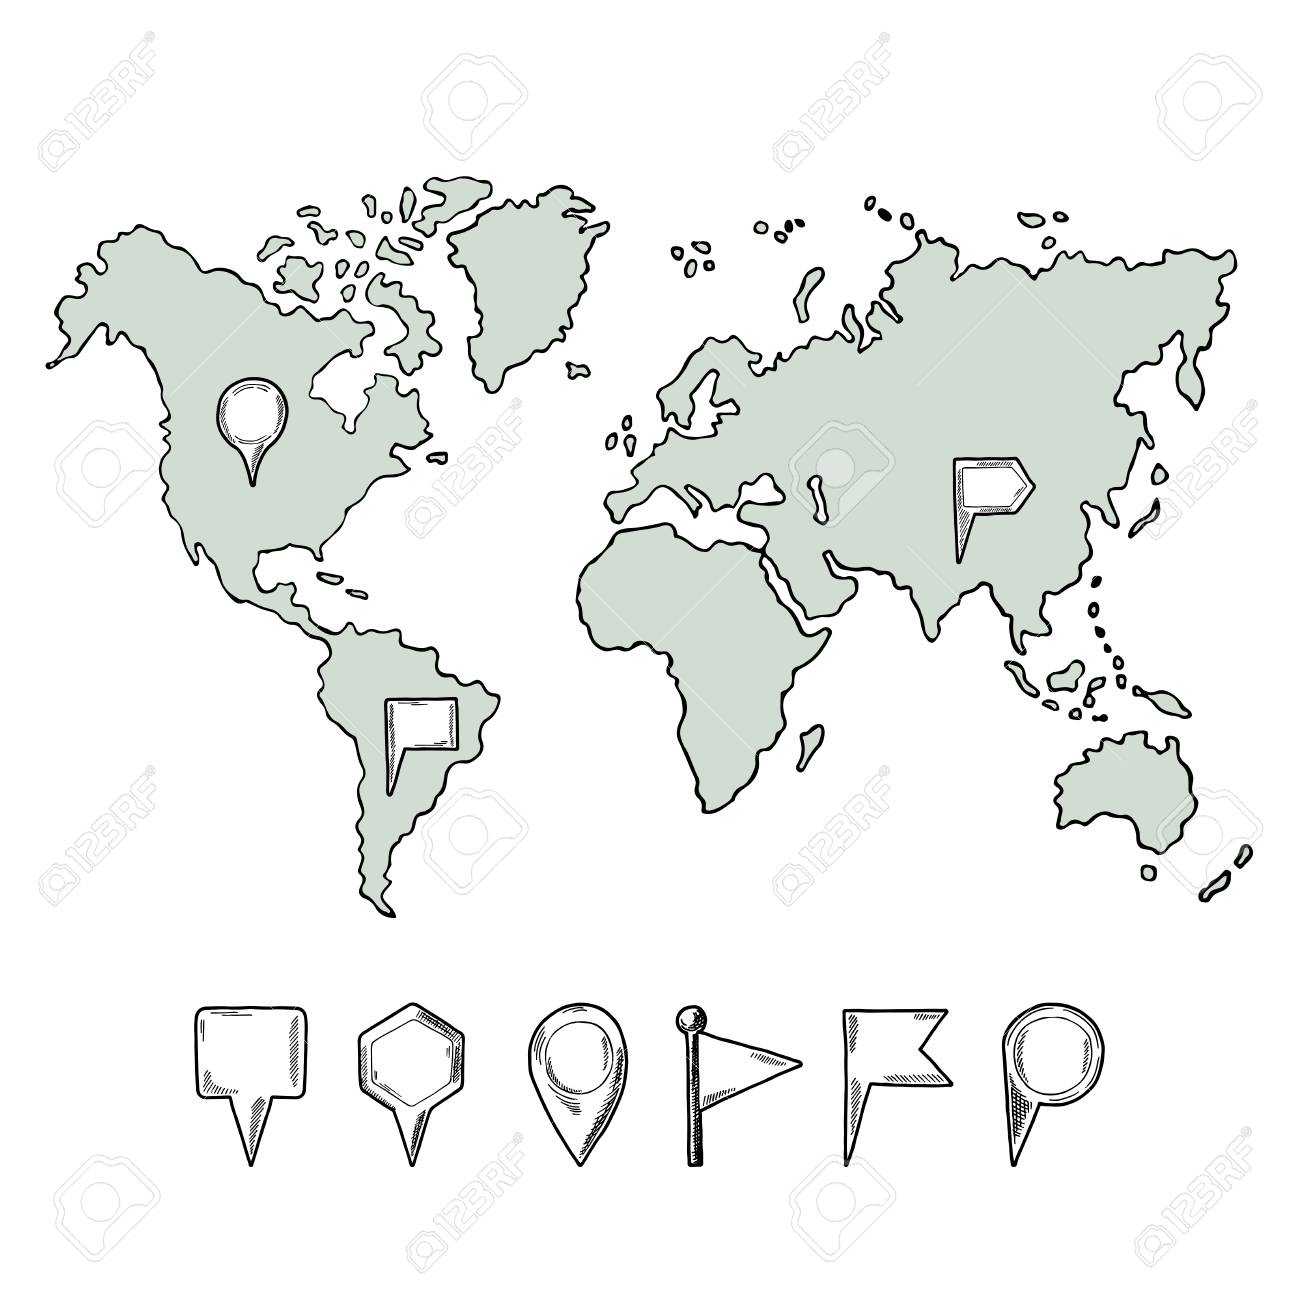 Hand Drawn Map Of The World.Doodle Illustrations Of World Map With Hand Drawn Pins Vector